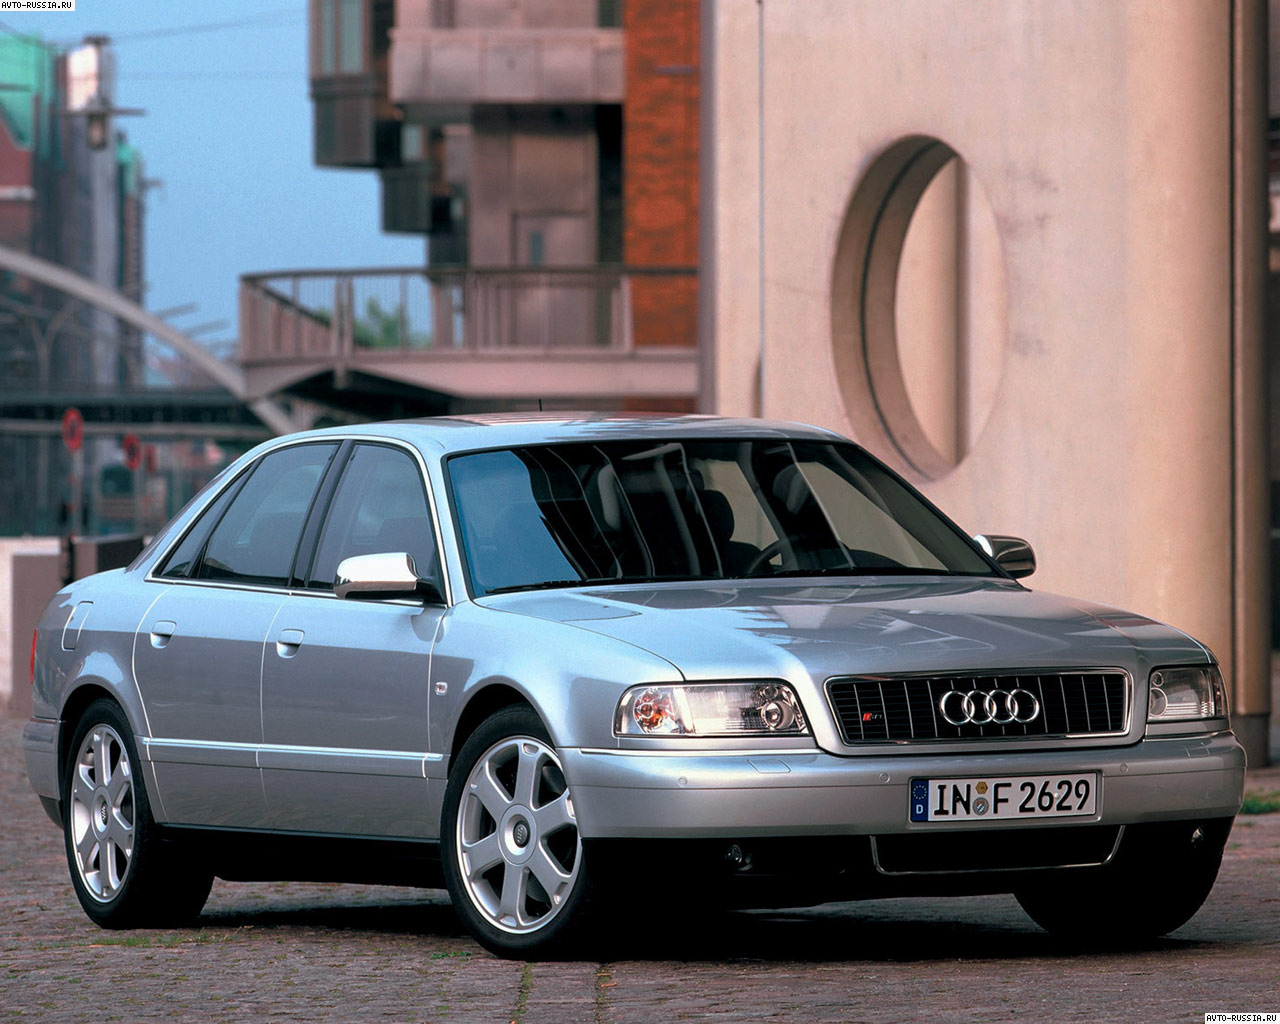 2001 Audi S8 (d2) - pictures, information and specs - Auto ...